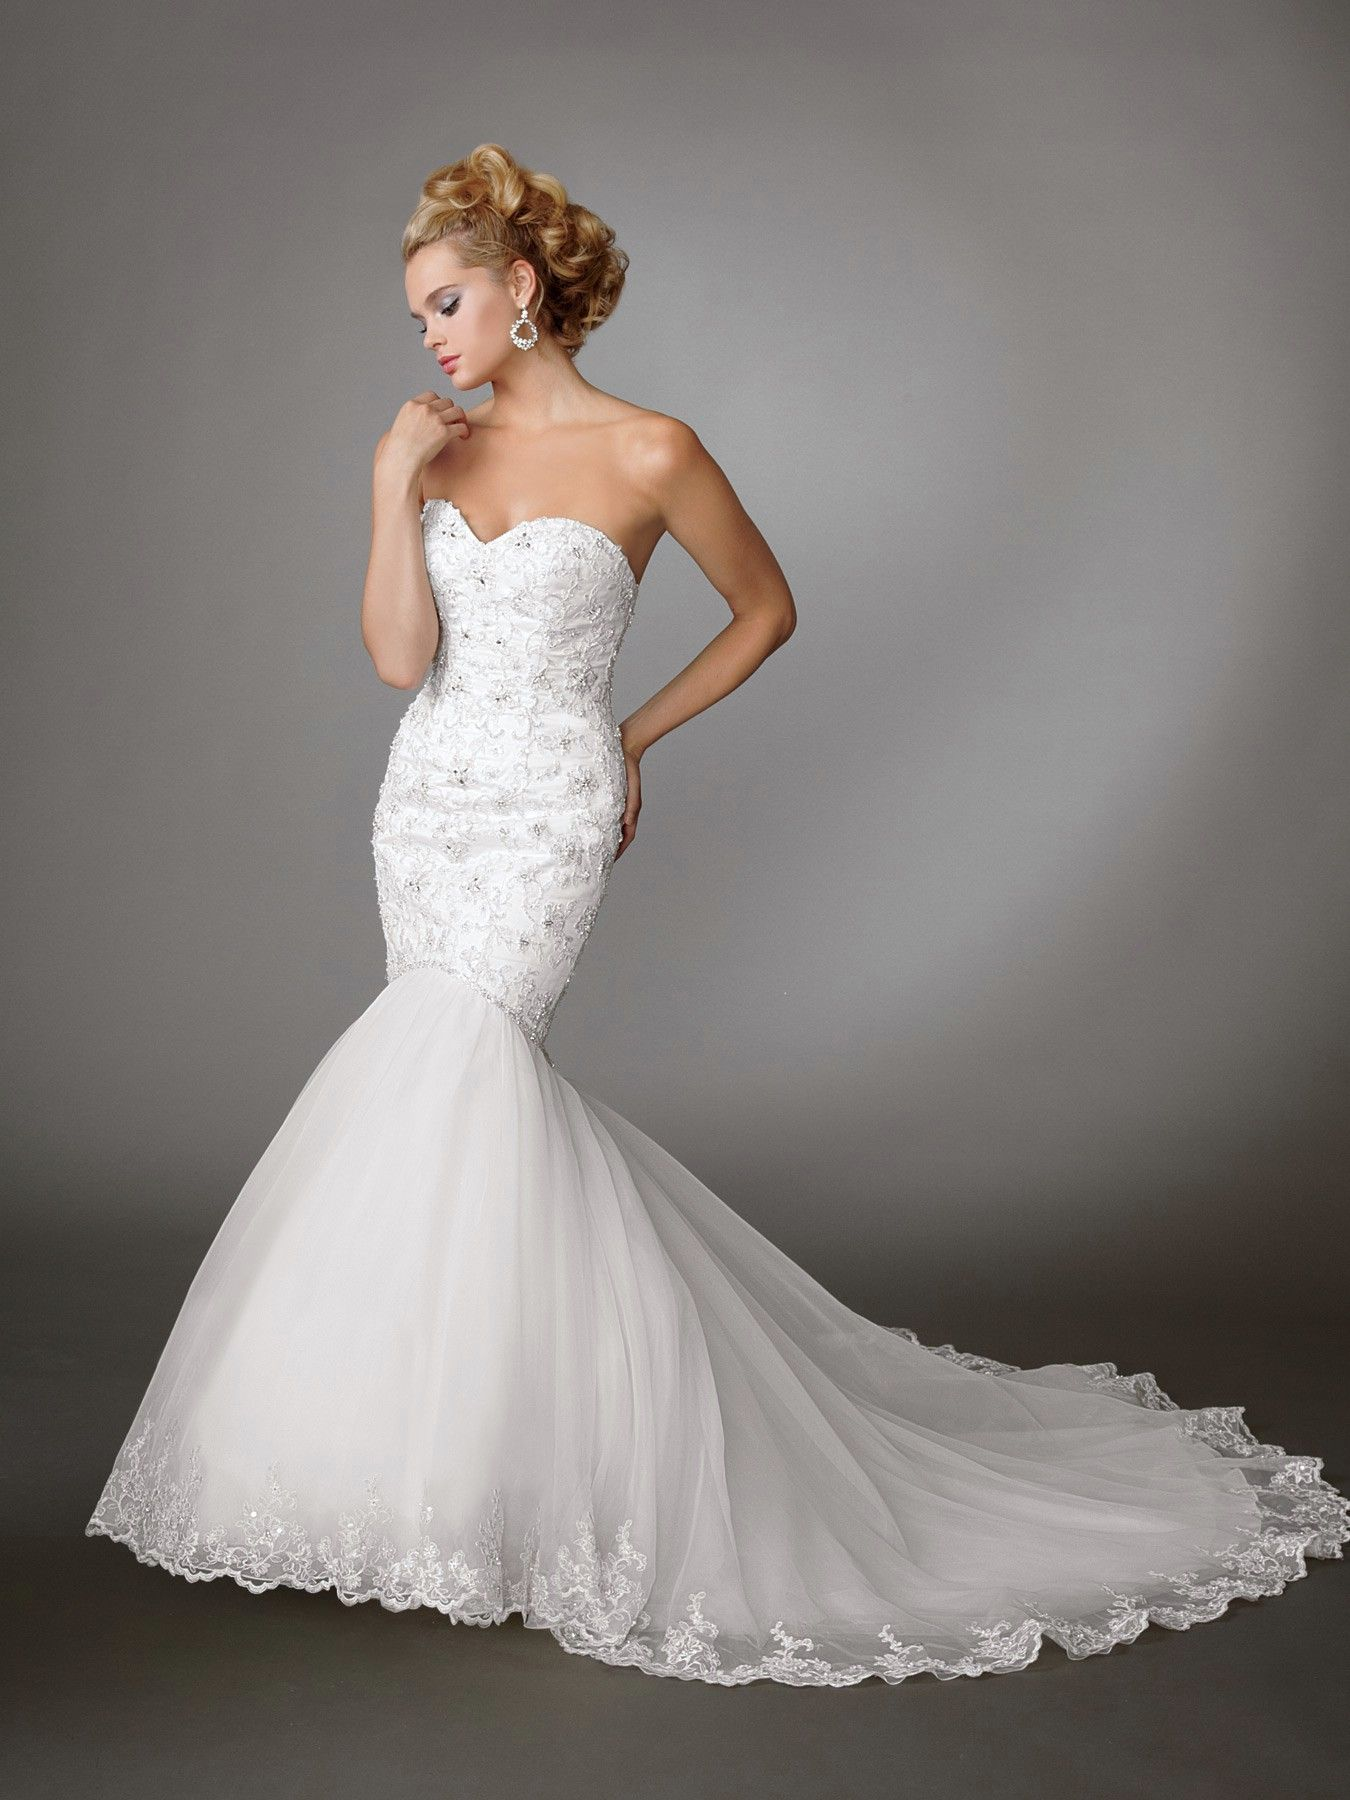 mermaid dress wedding Jordan Wedding Dresses Style M wedding dresses